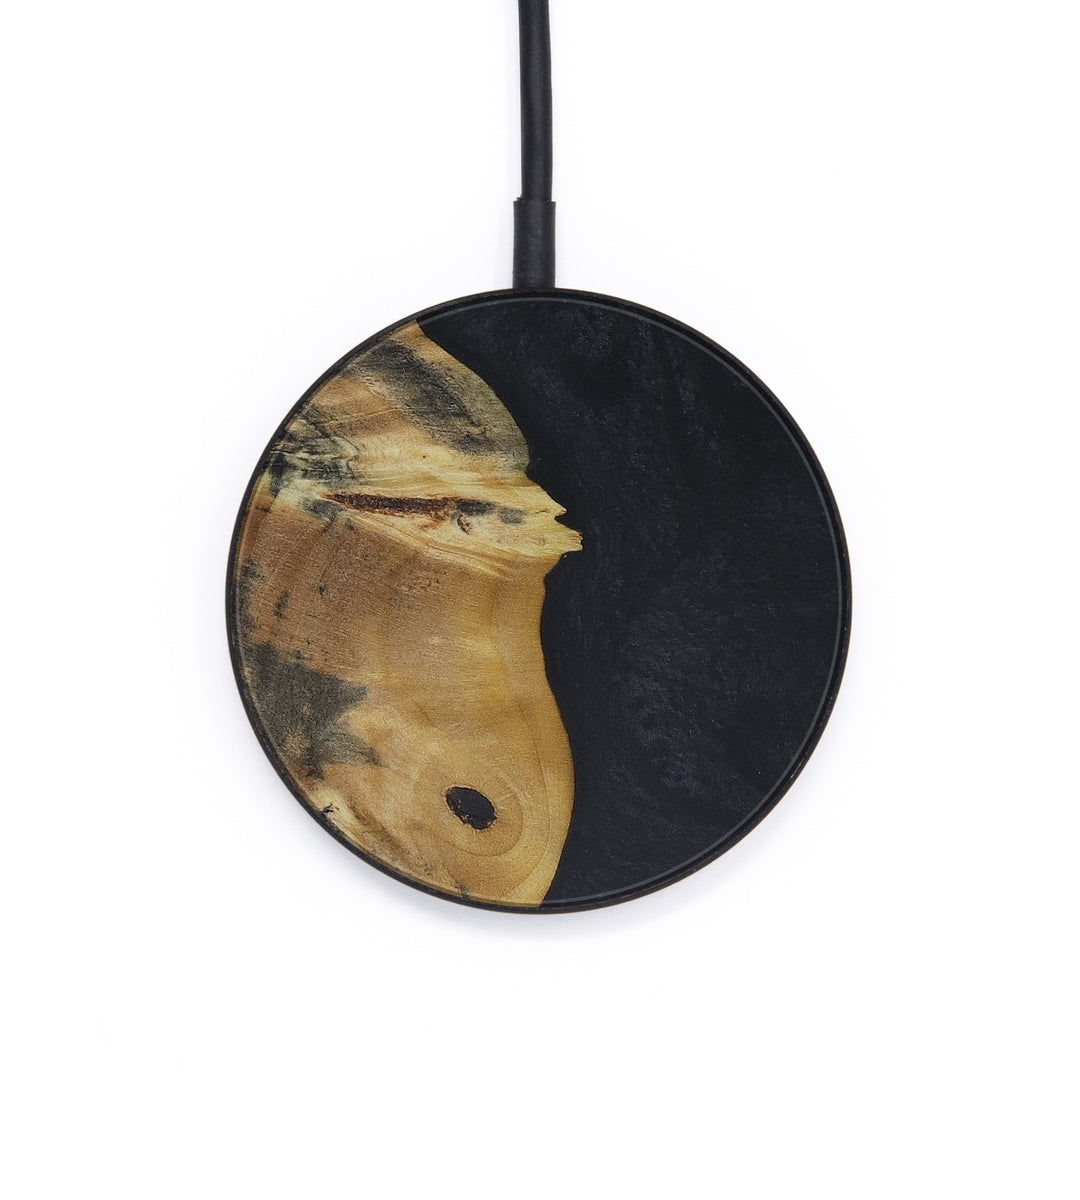 Circle Wood+Resin Wireless Charger - Terrell (Pure Black, 409419)